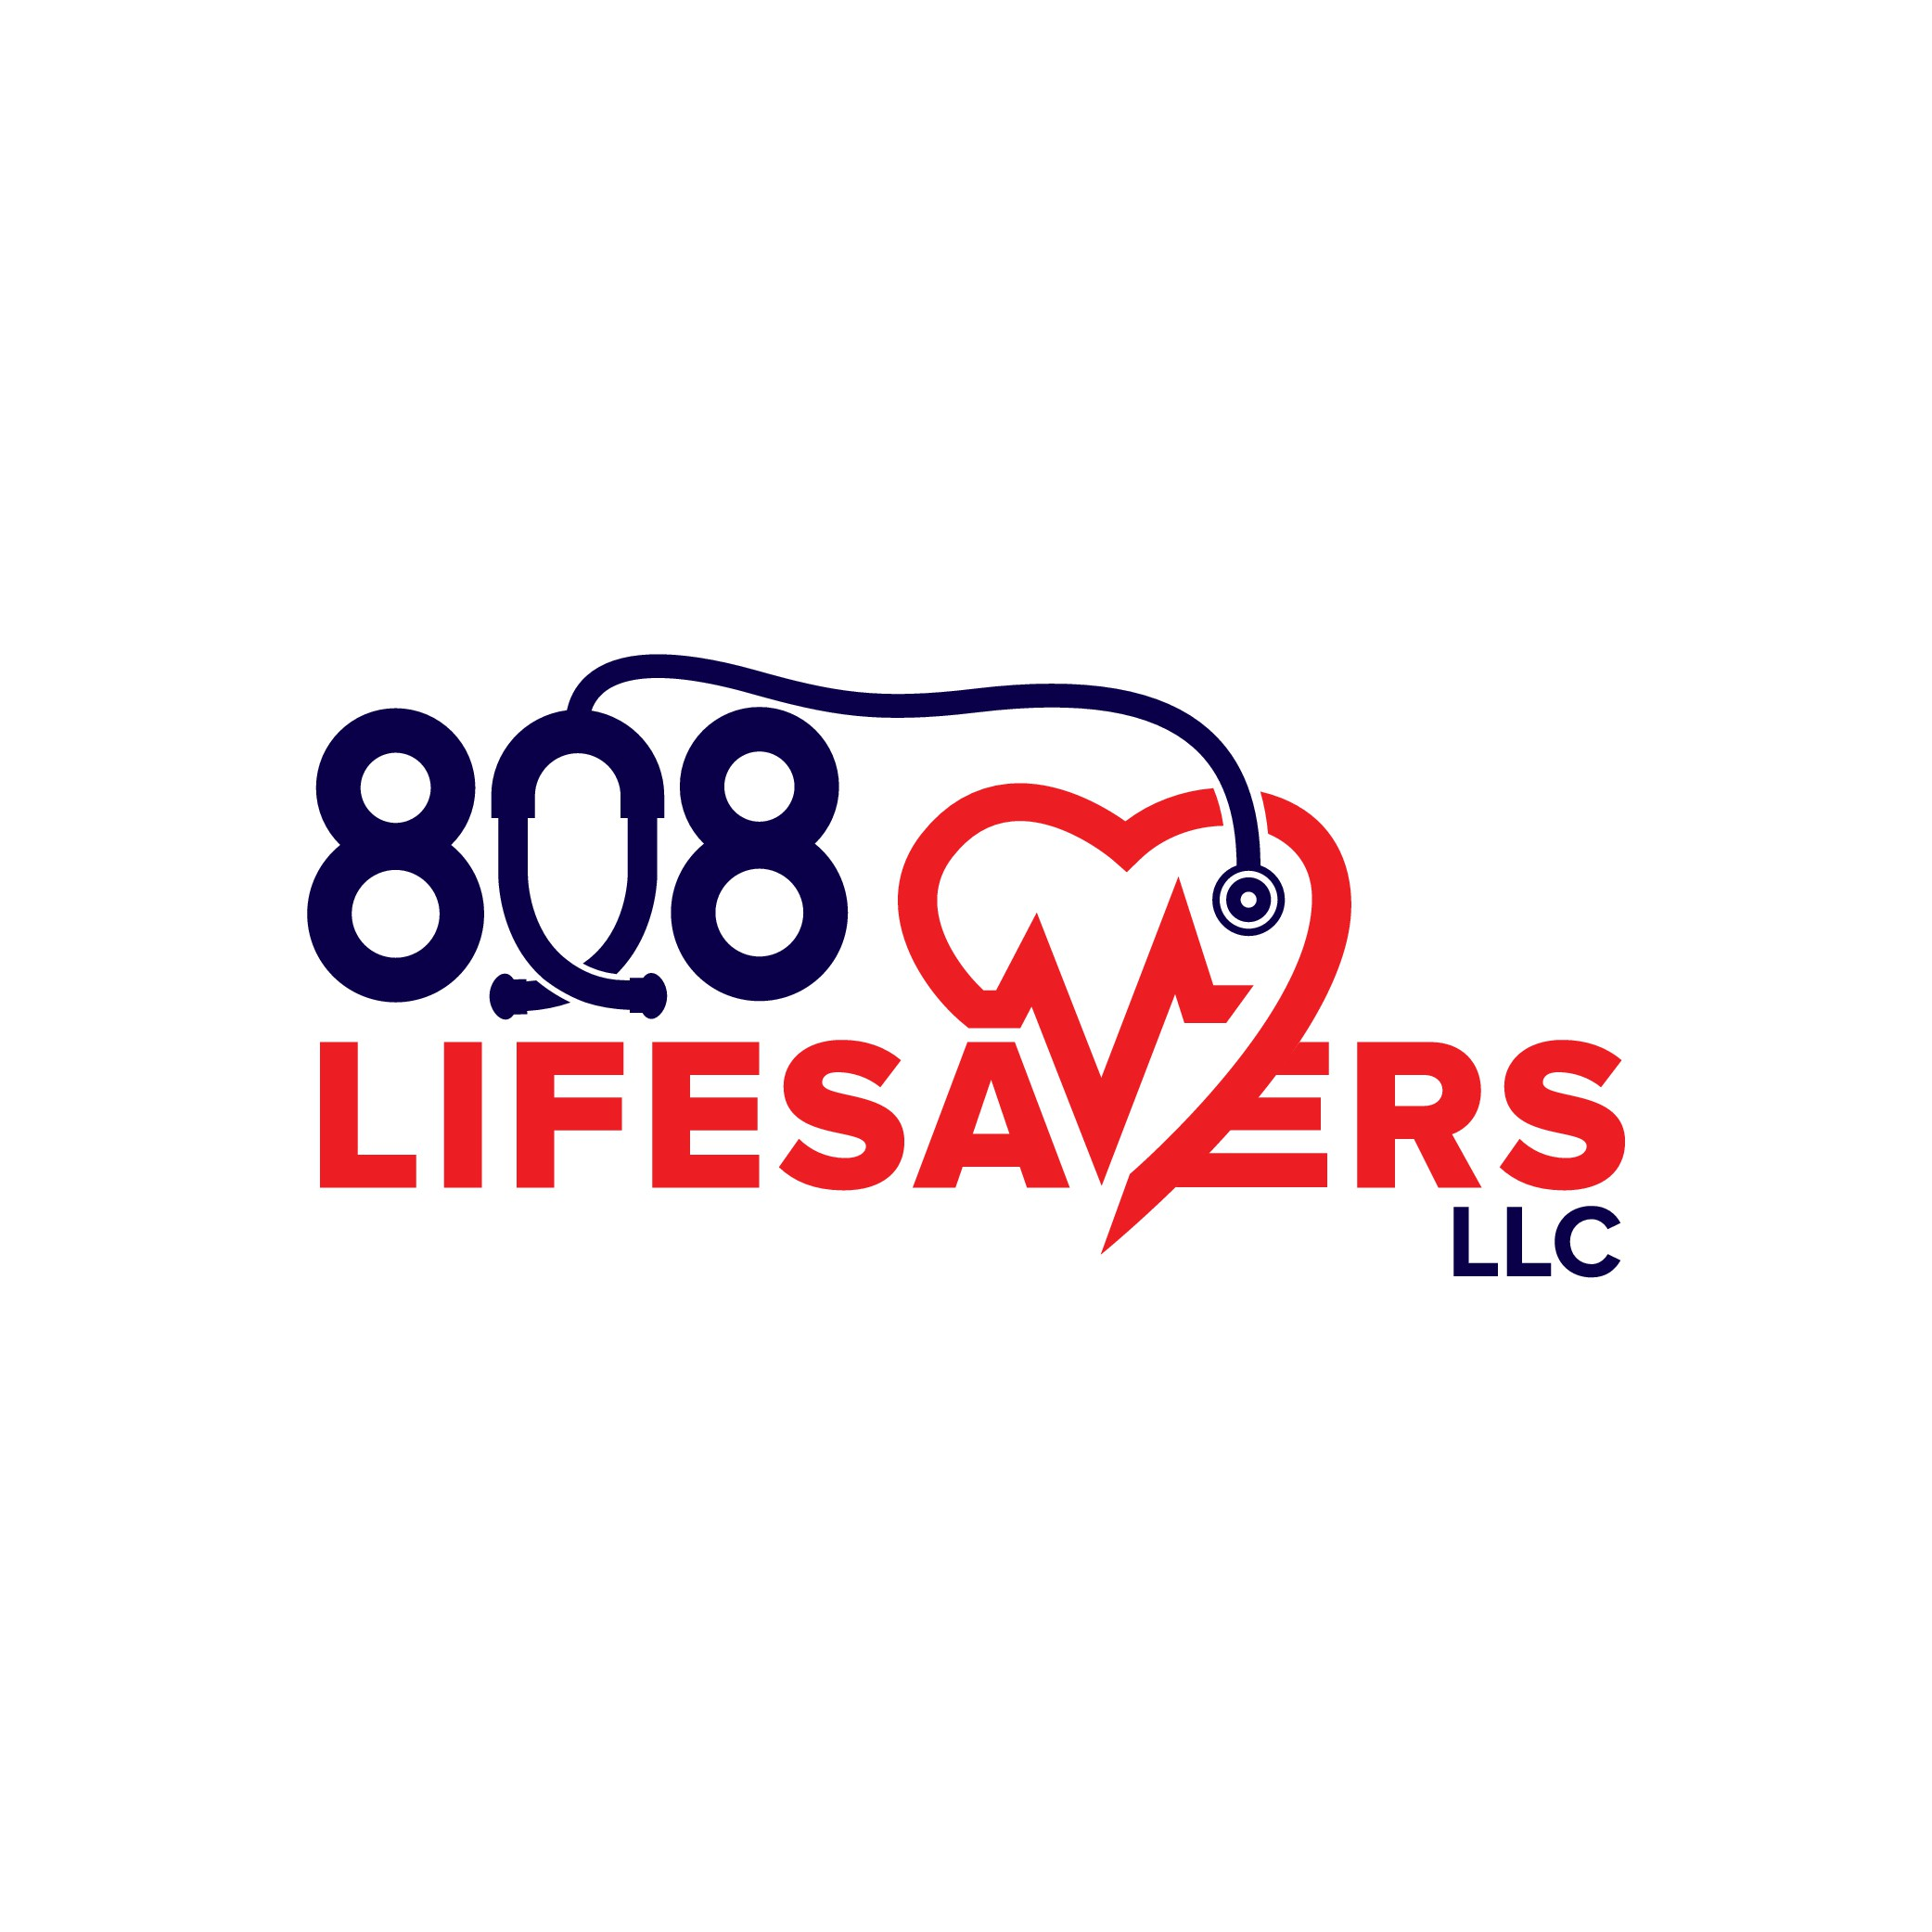 808 Lifesavers LLC needs someone to deliver a breath of life to the logo!